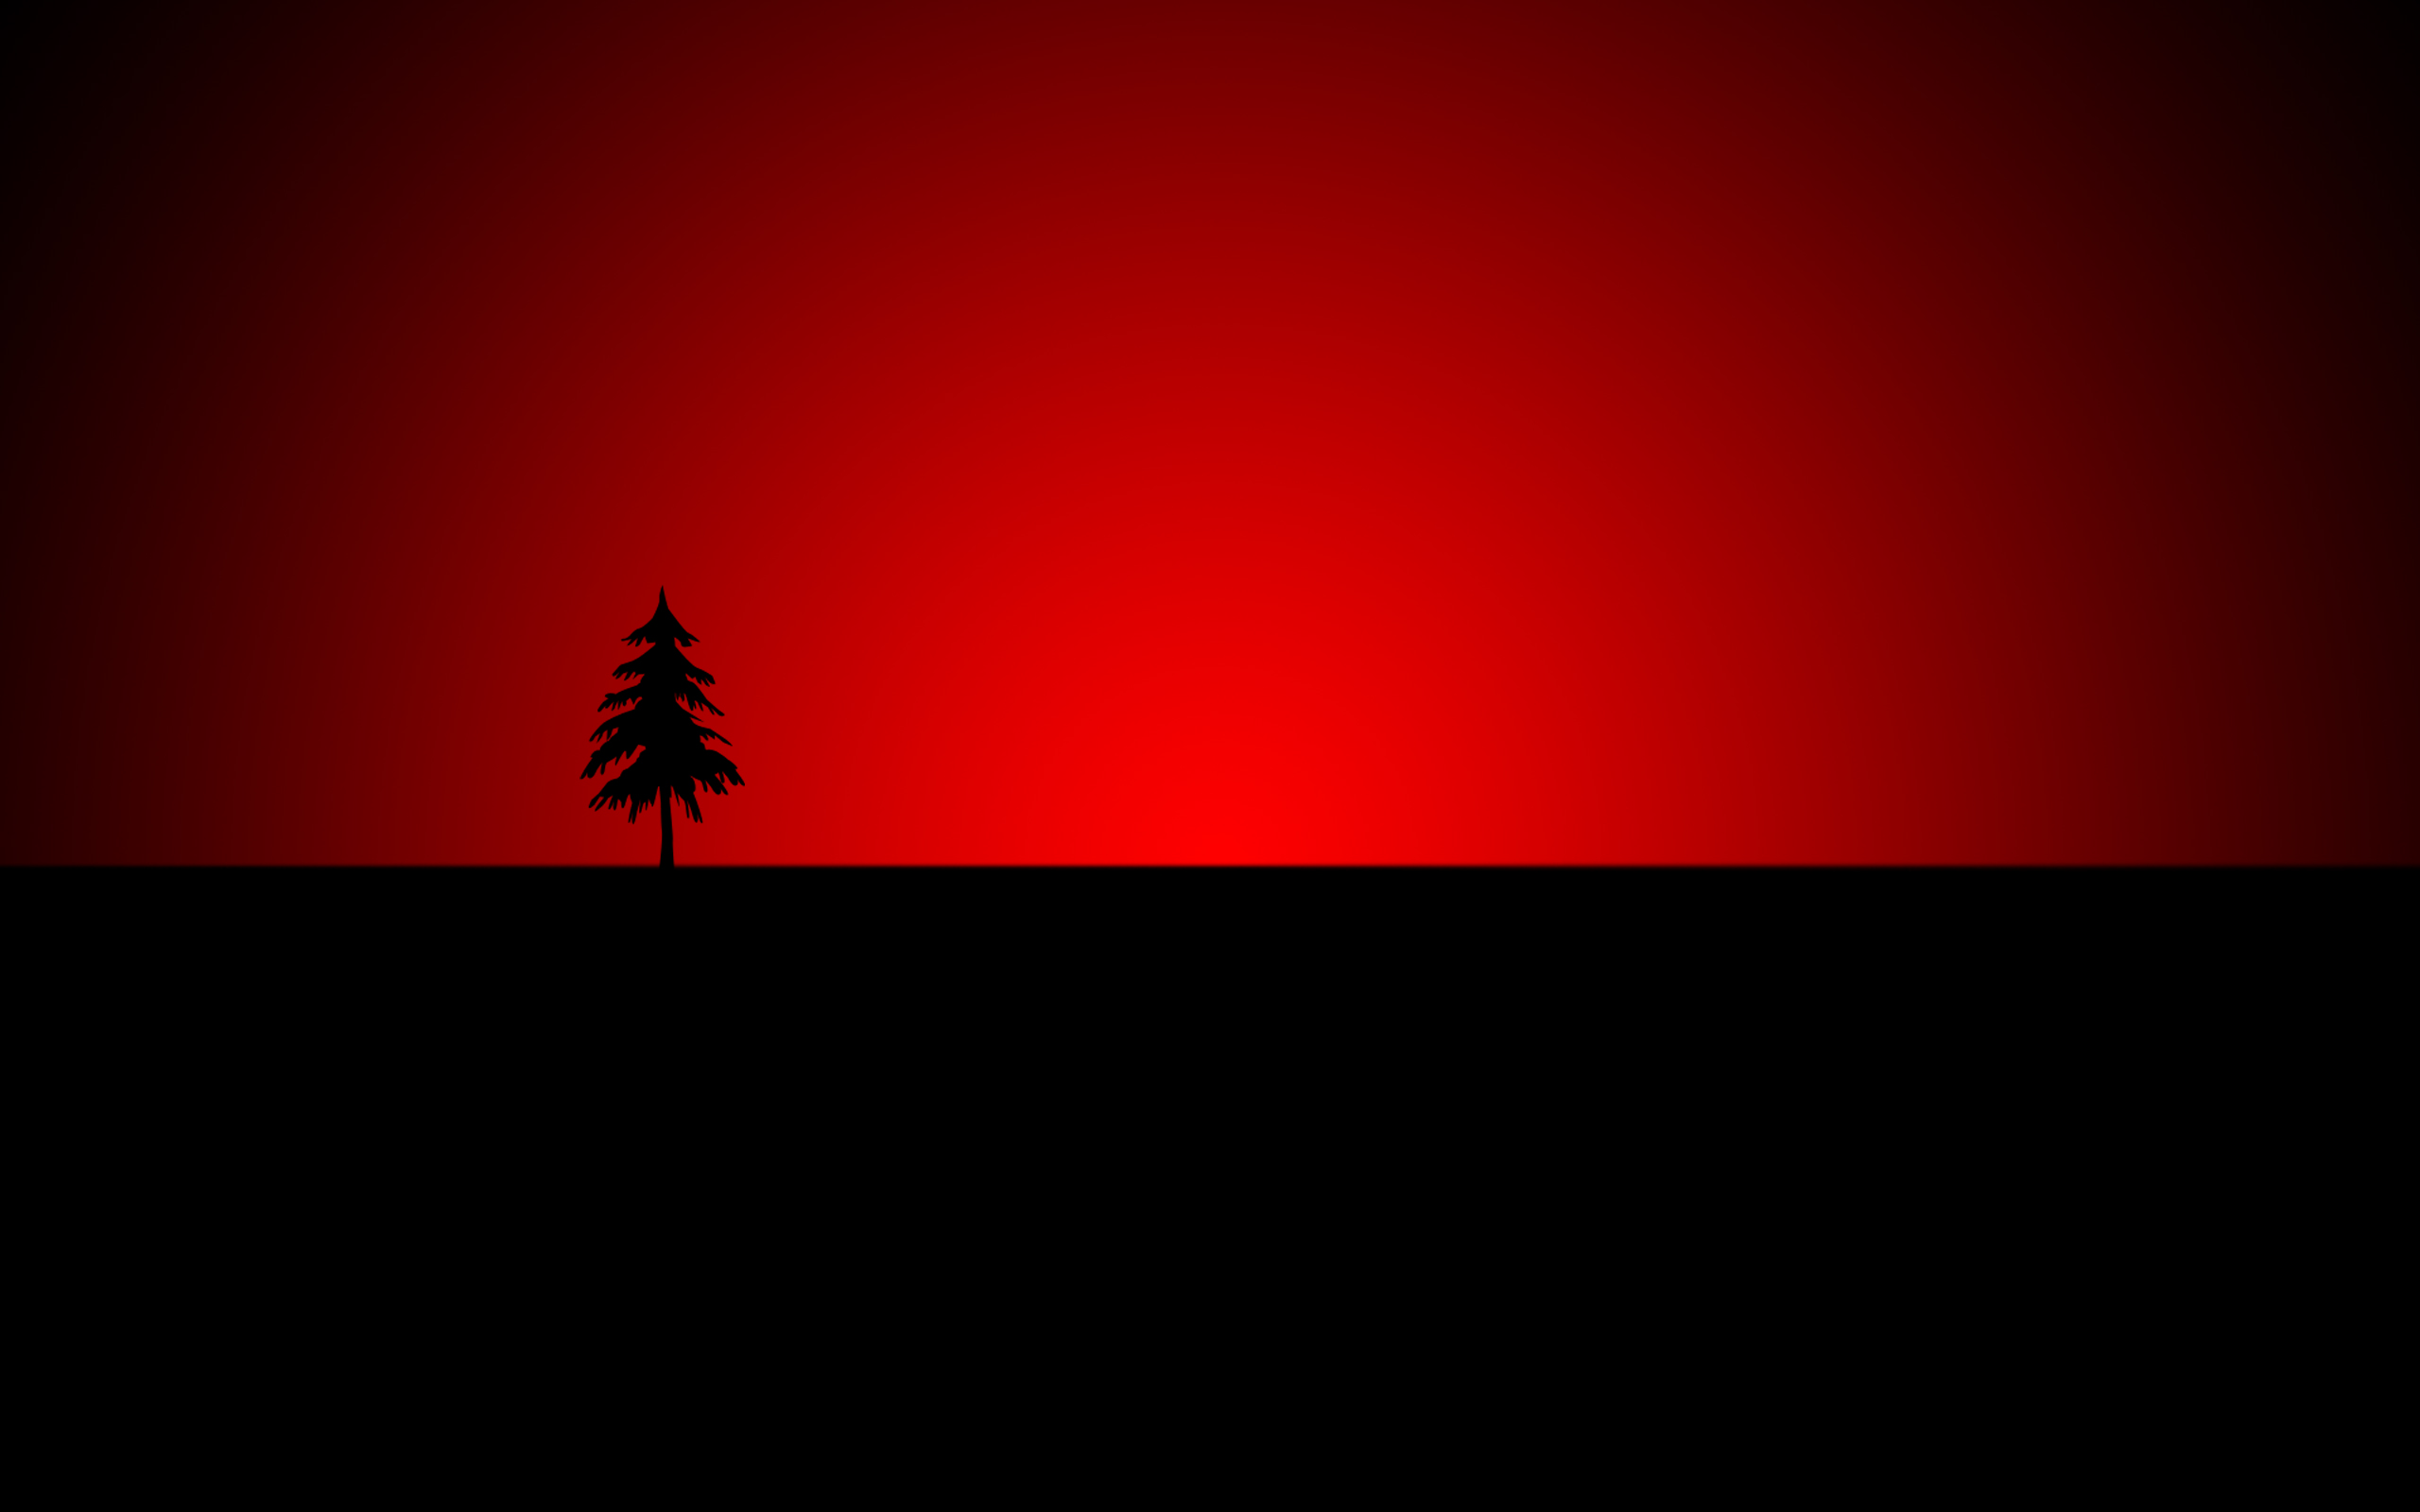 Related Pictures red black vintage wallpaper red sunset background 2560x1600